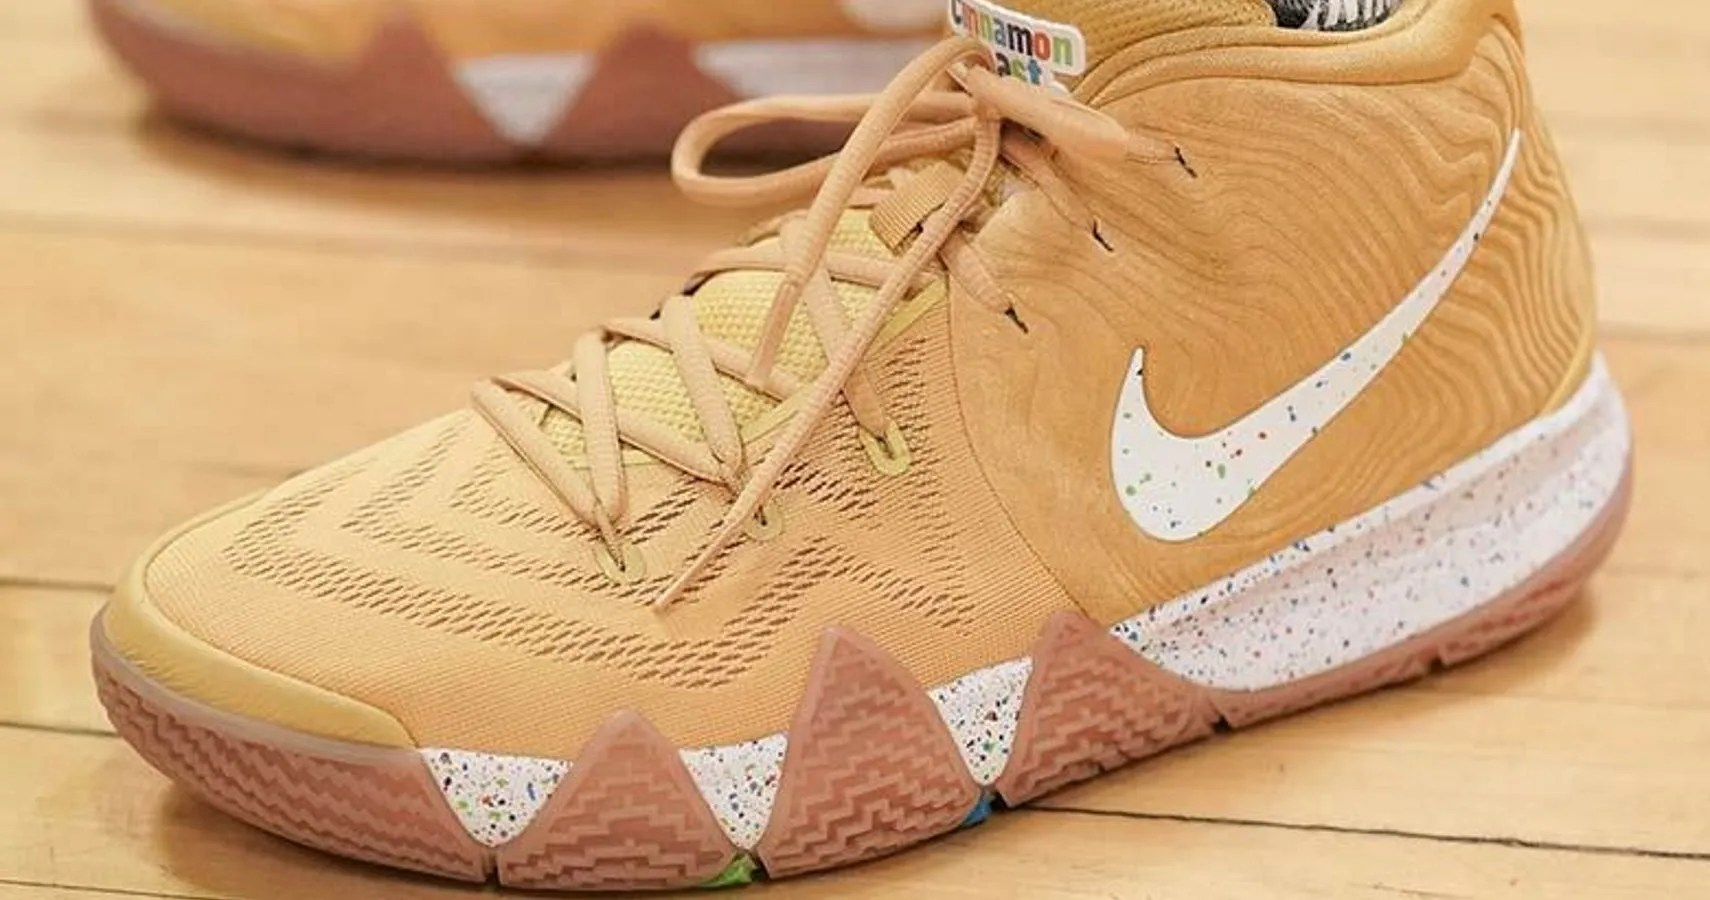 the best attitude 0b1d4 59091 Check Out The 'Cinnamon Toast Crunch' Nike Kyrie 4s   Best ...